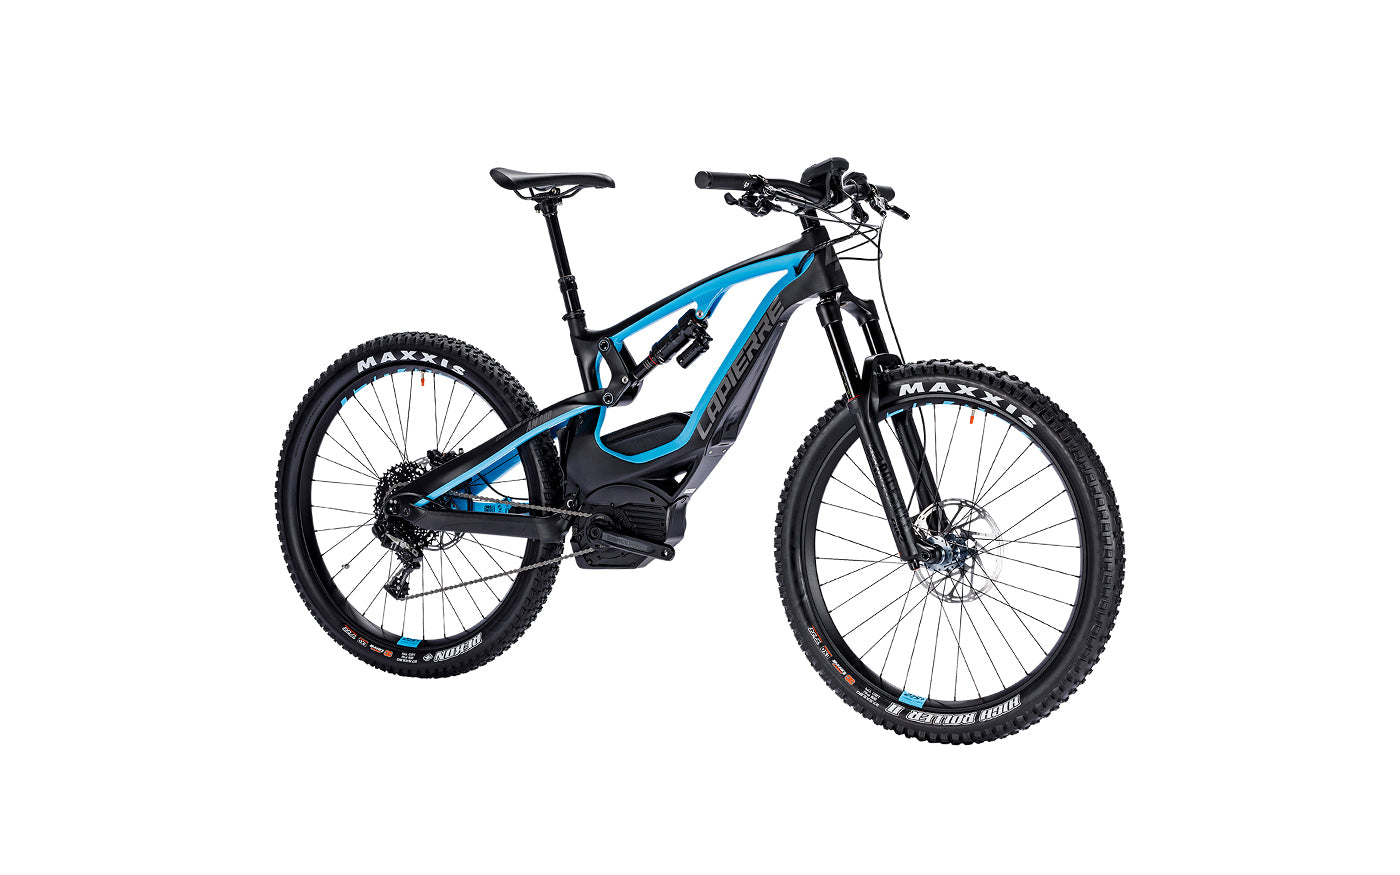 Lapierre OVERVOLT AM 900+ Carbon E-bike